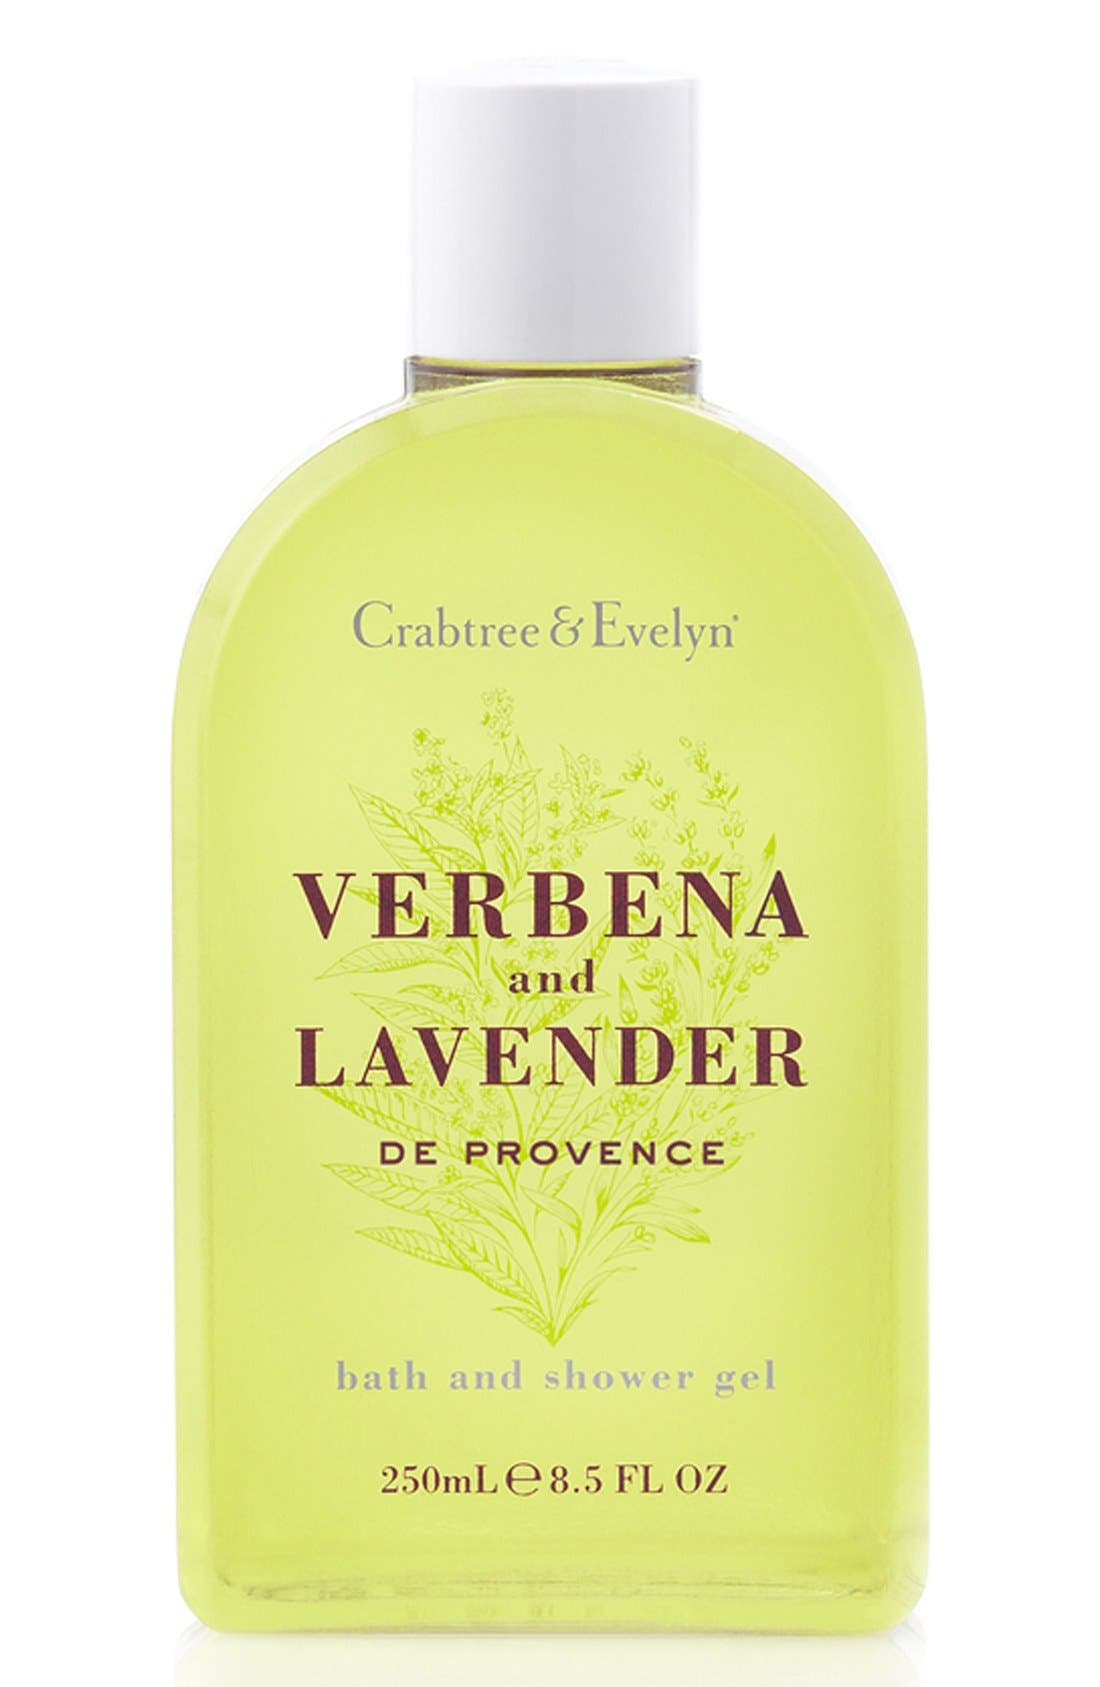 Crabtree & Evelyn 'Verbena & Lavender de Provence' Bath and Shower Gel (Nordstrom Exclusive)